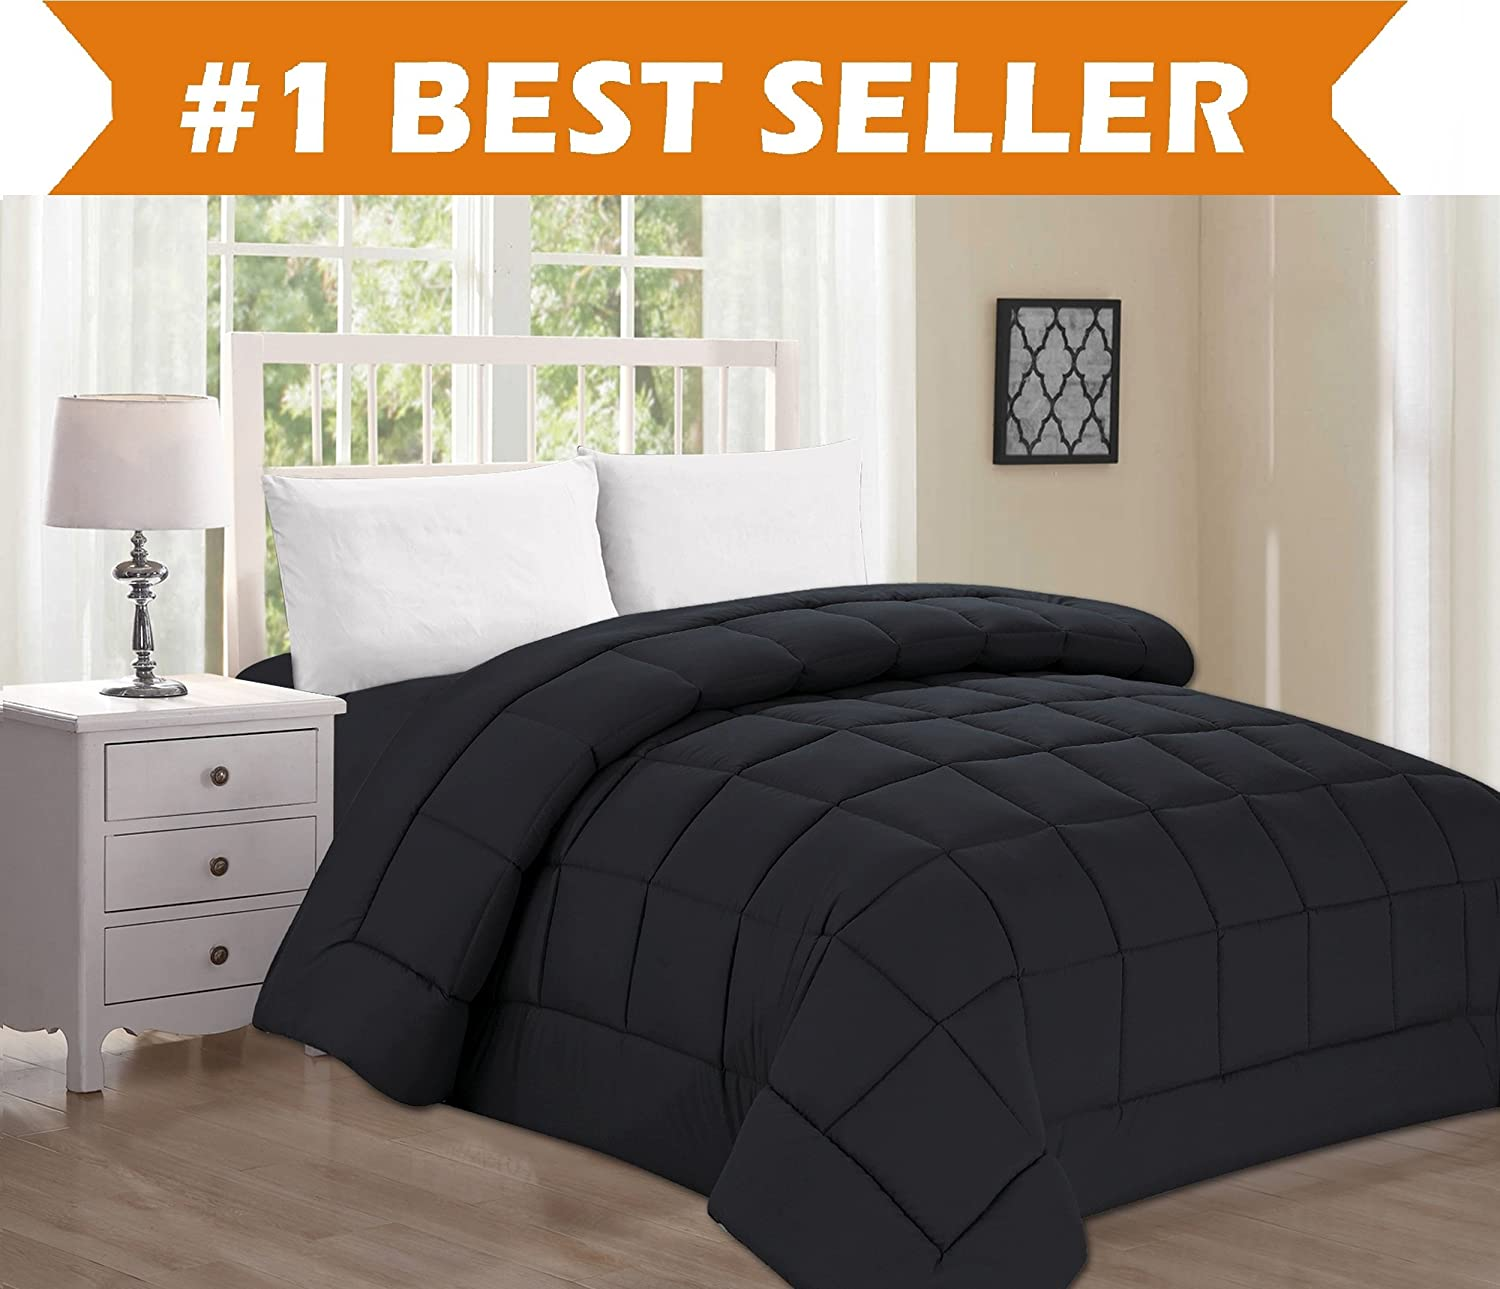 Best Selling Luxury Comforter on Amazon! Elegant Comfort Ultra Plush Down Alternative Double-Filled Comforter%100 Hypoallergenic, Full/Queen, Black COMIN18JU084739